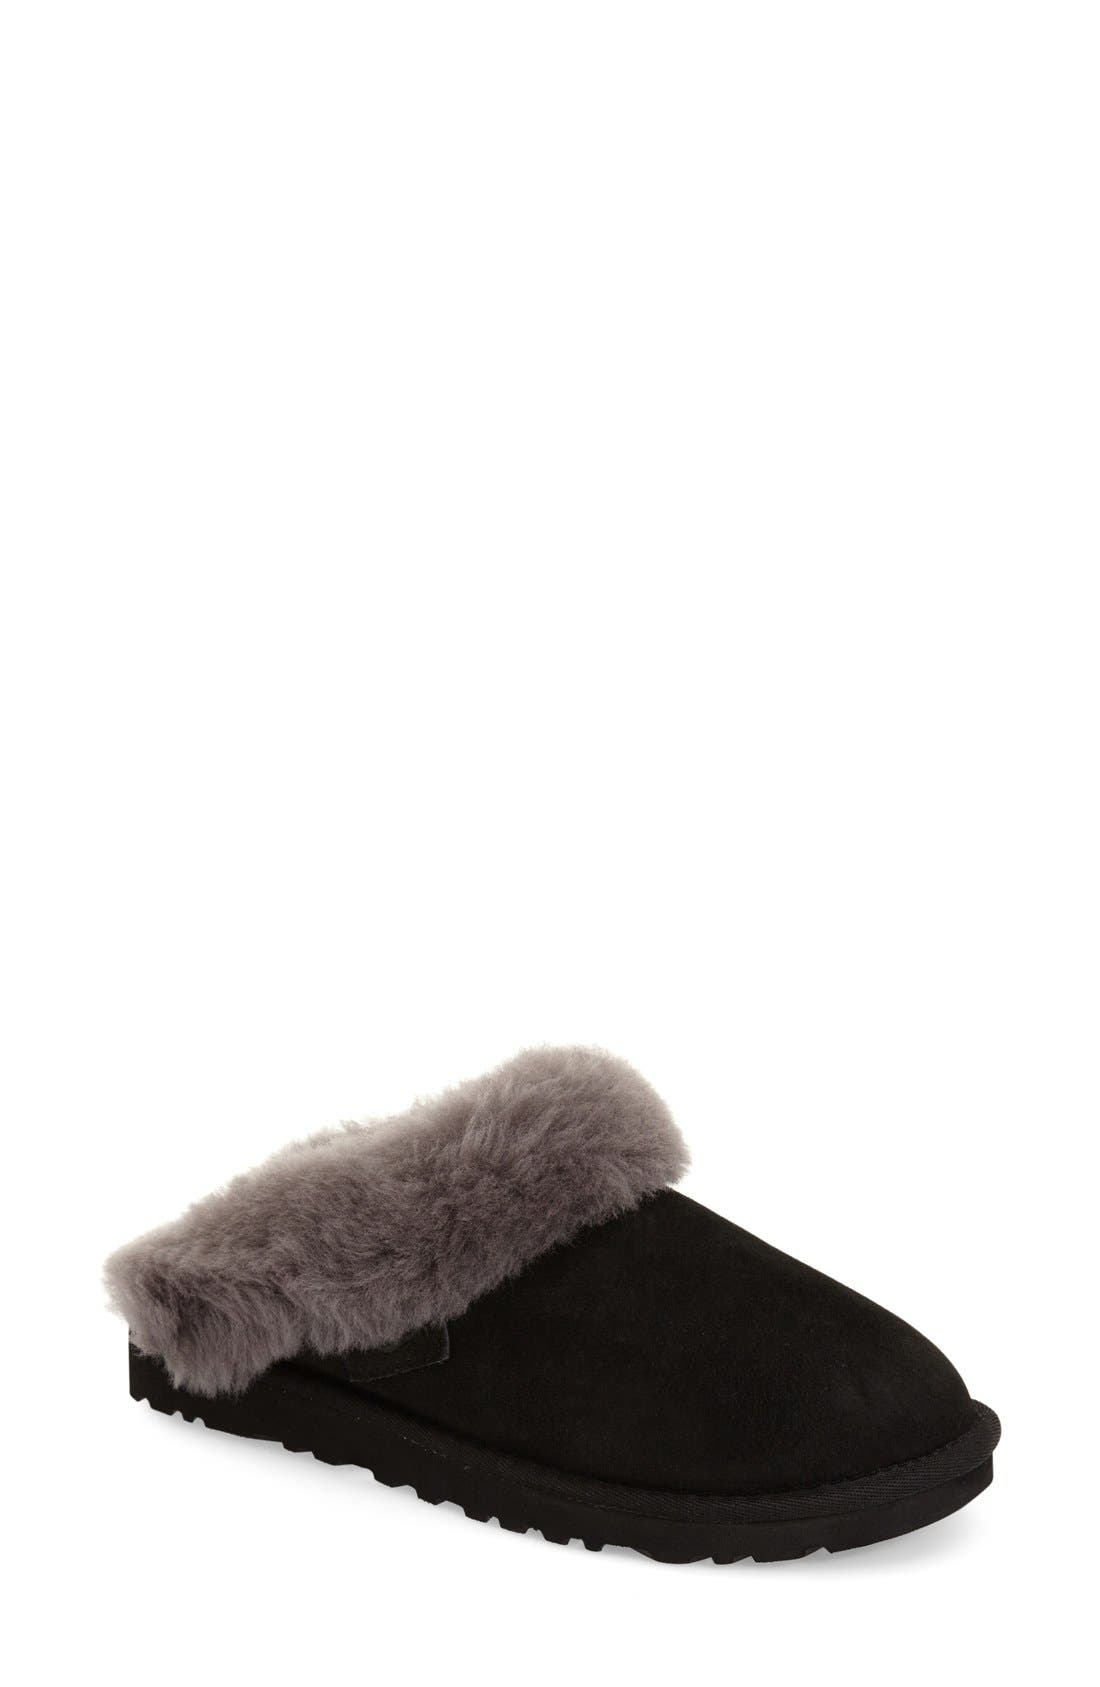 UGG<SUP>®</SUP>, 'Cluggette' Genuine Shearling Indoor/Outdoor Slipper, Main thumbnail 1, color, 001